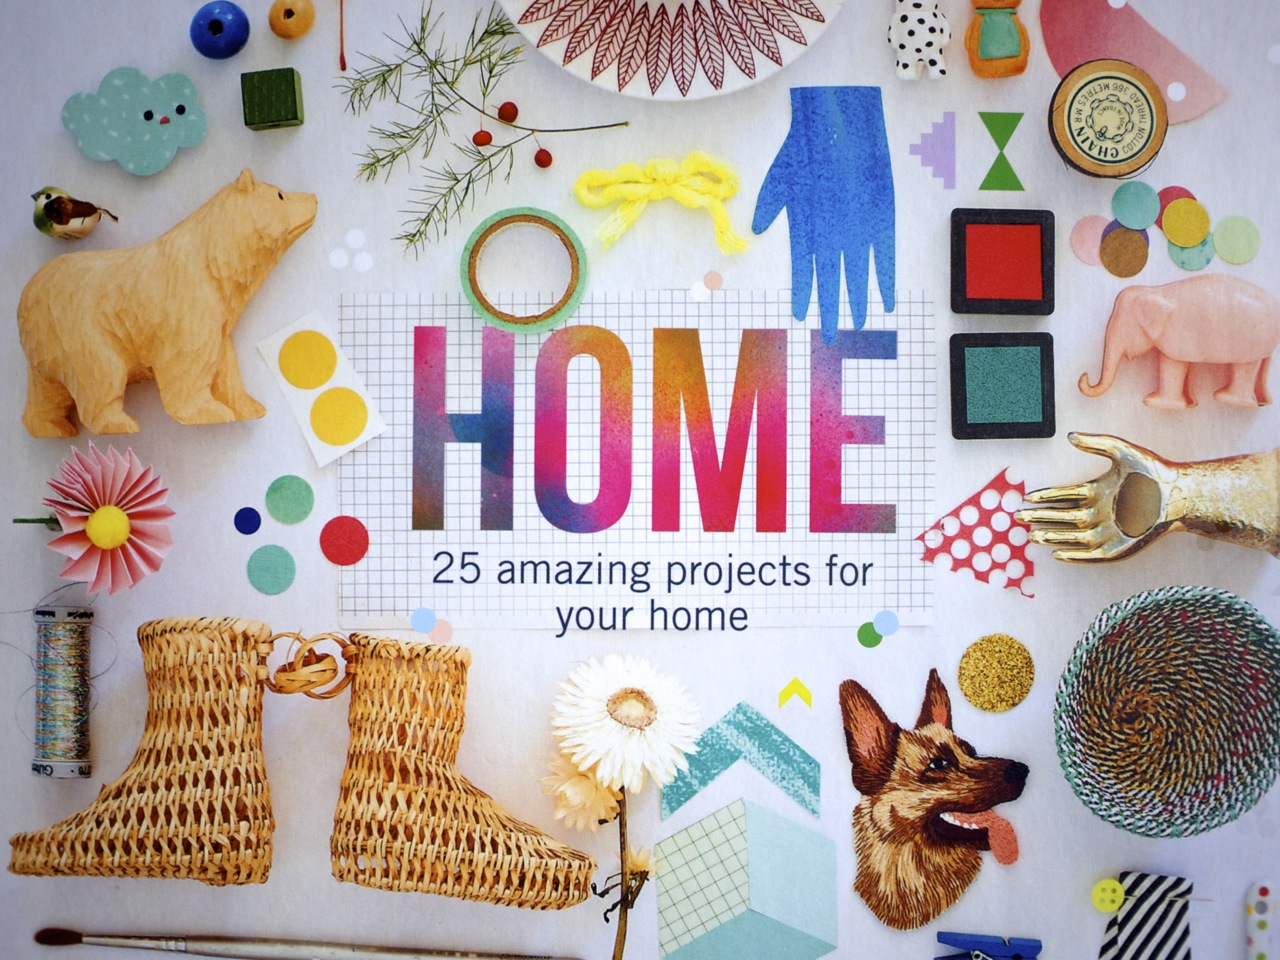 Home by Beci Oprin